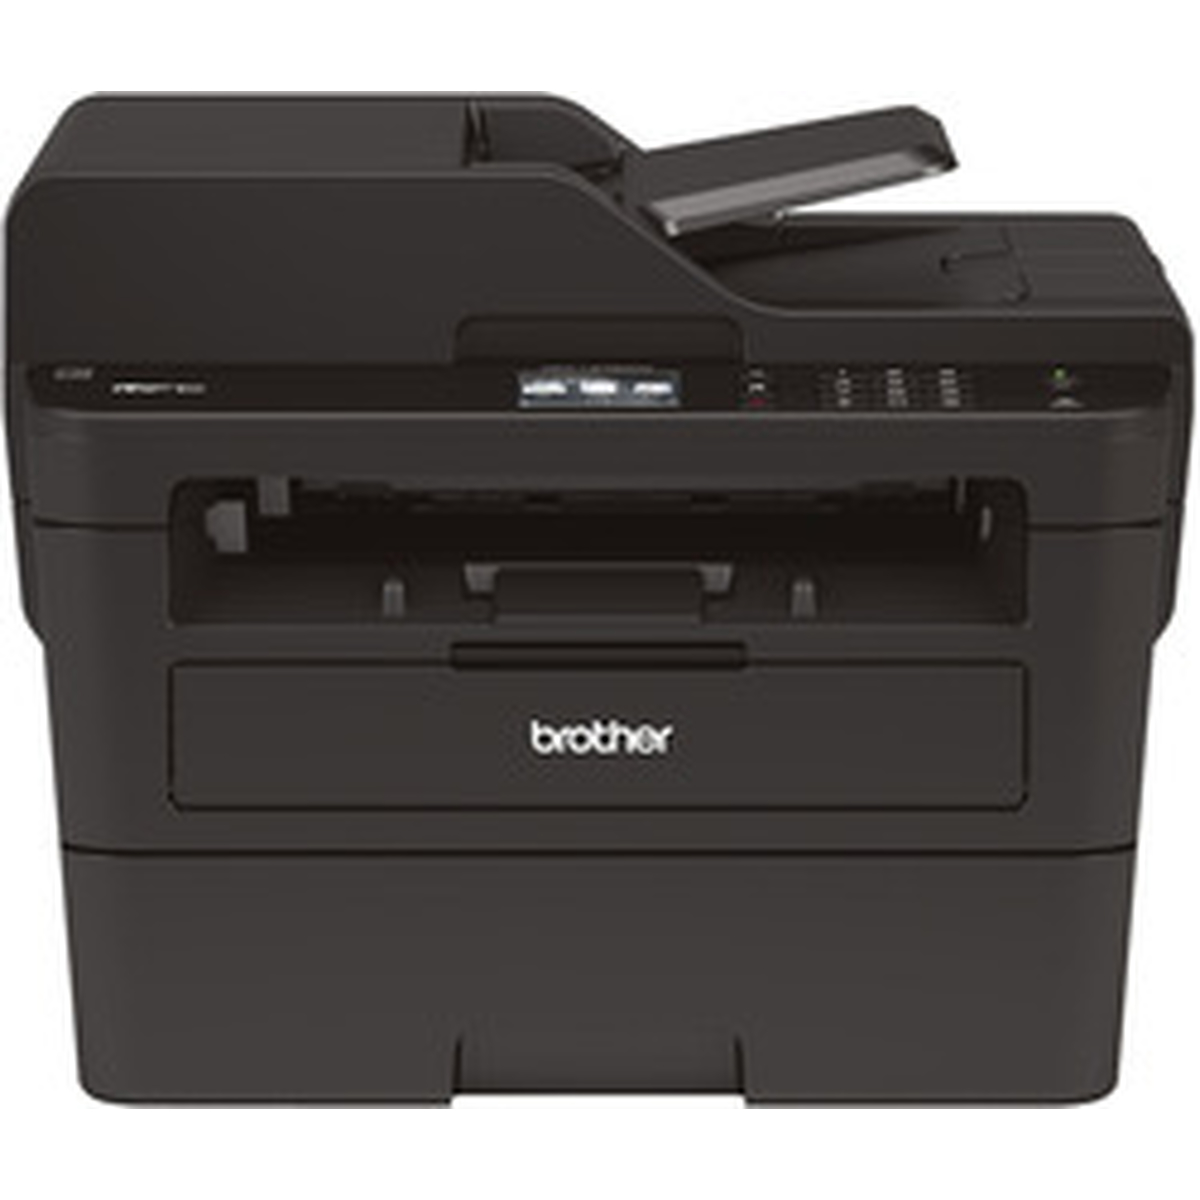 Brother MFC-L2730DW 4in1 Multifunktionsdrucker